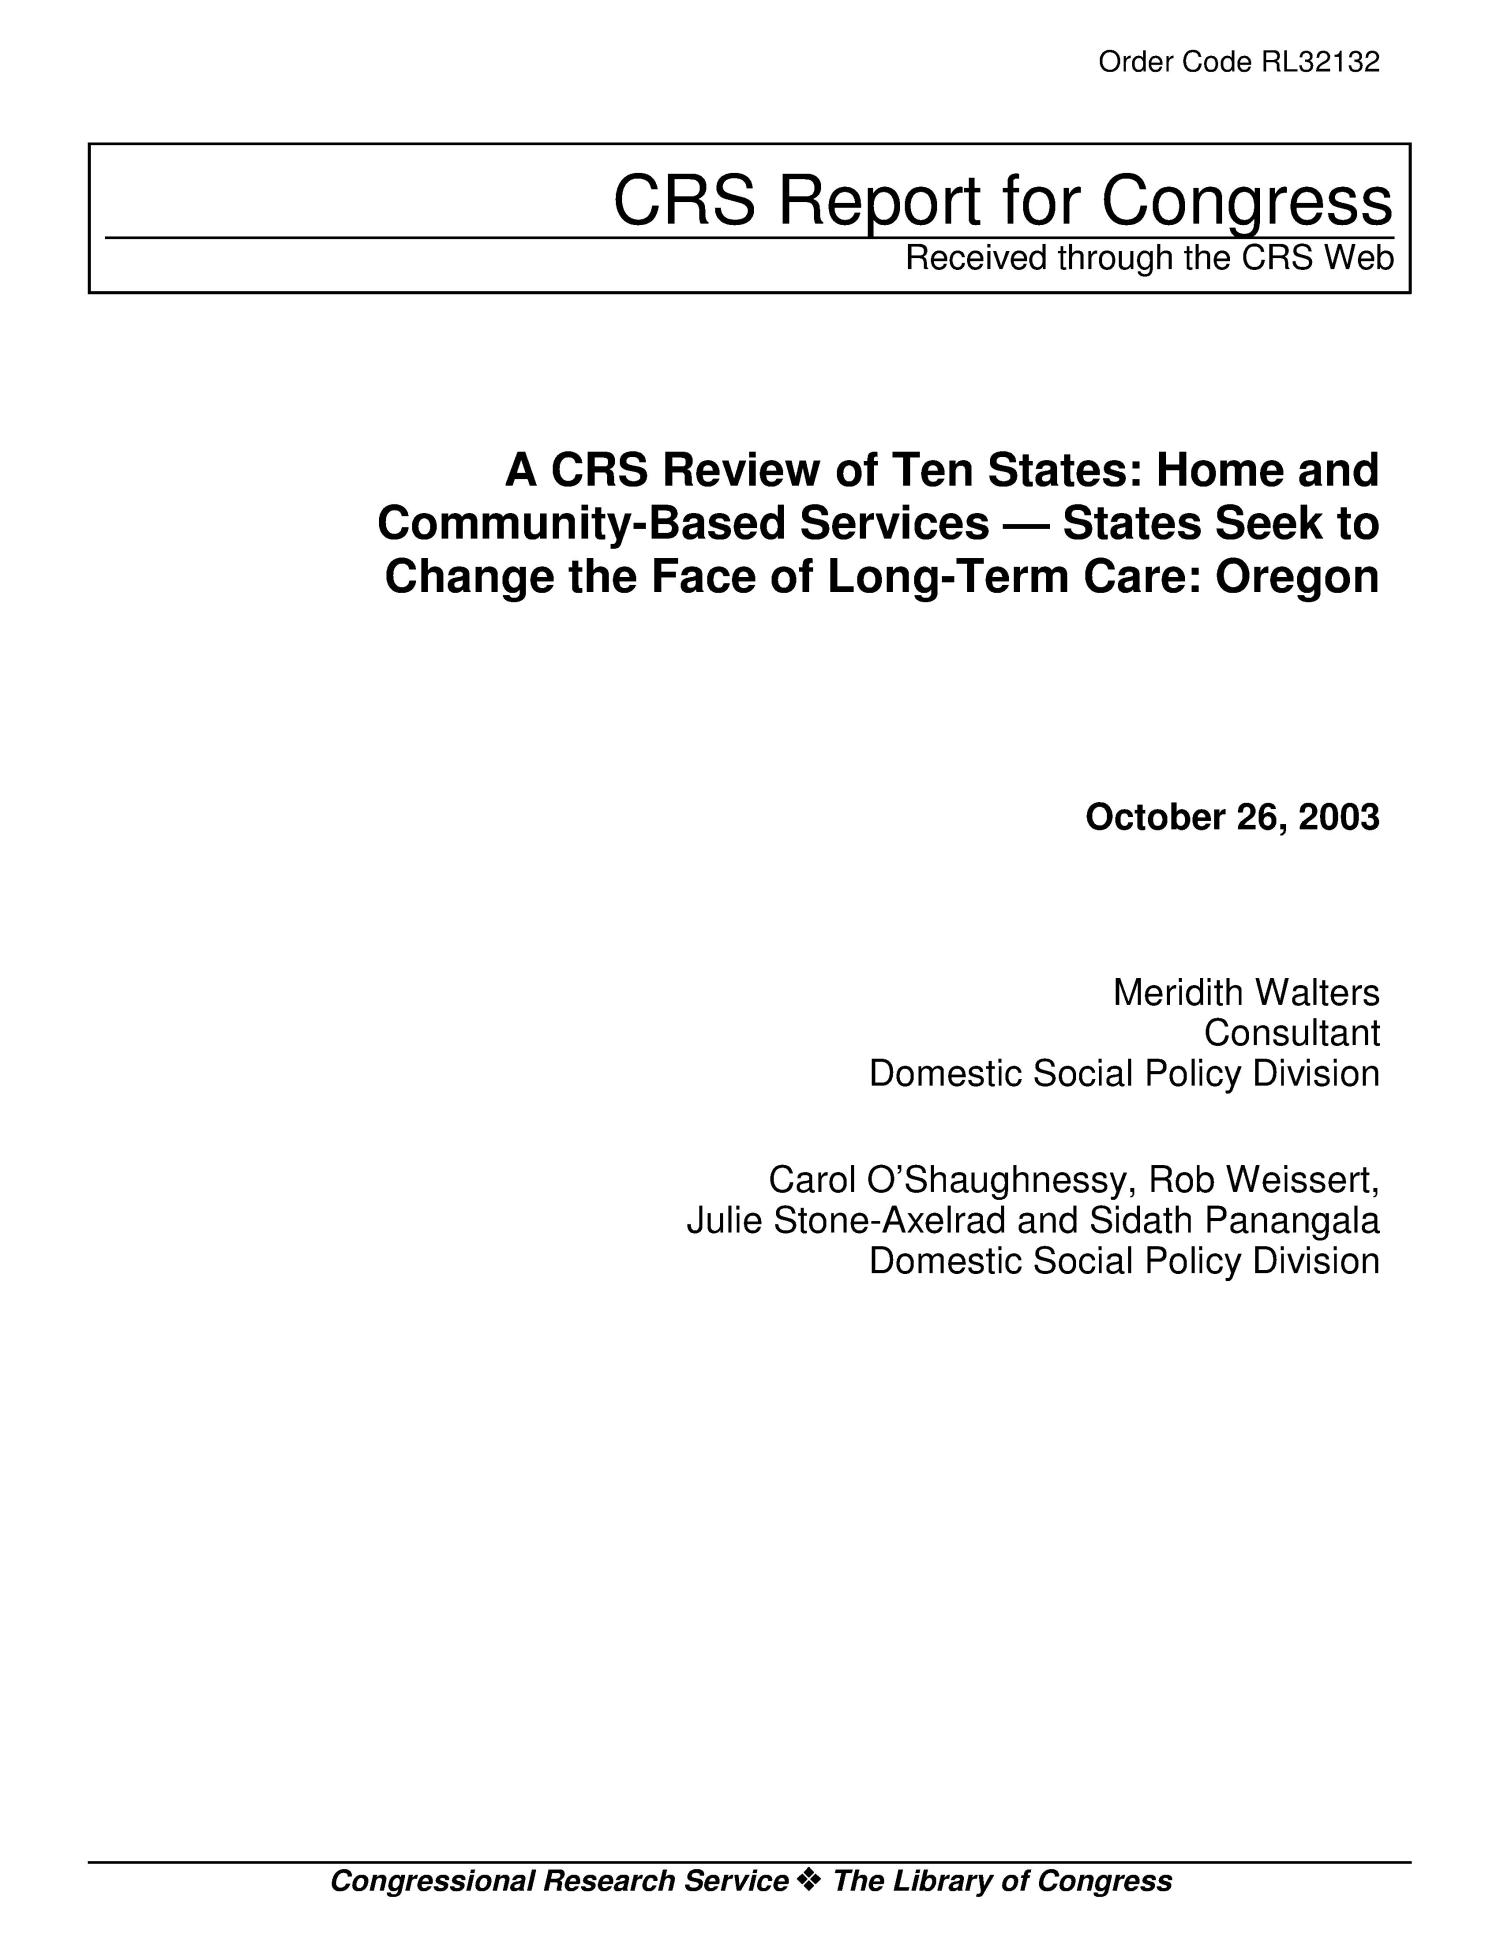 A CRS Review of Ten States: Home and Community-Based Services ...